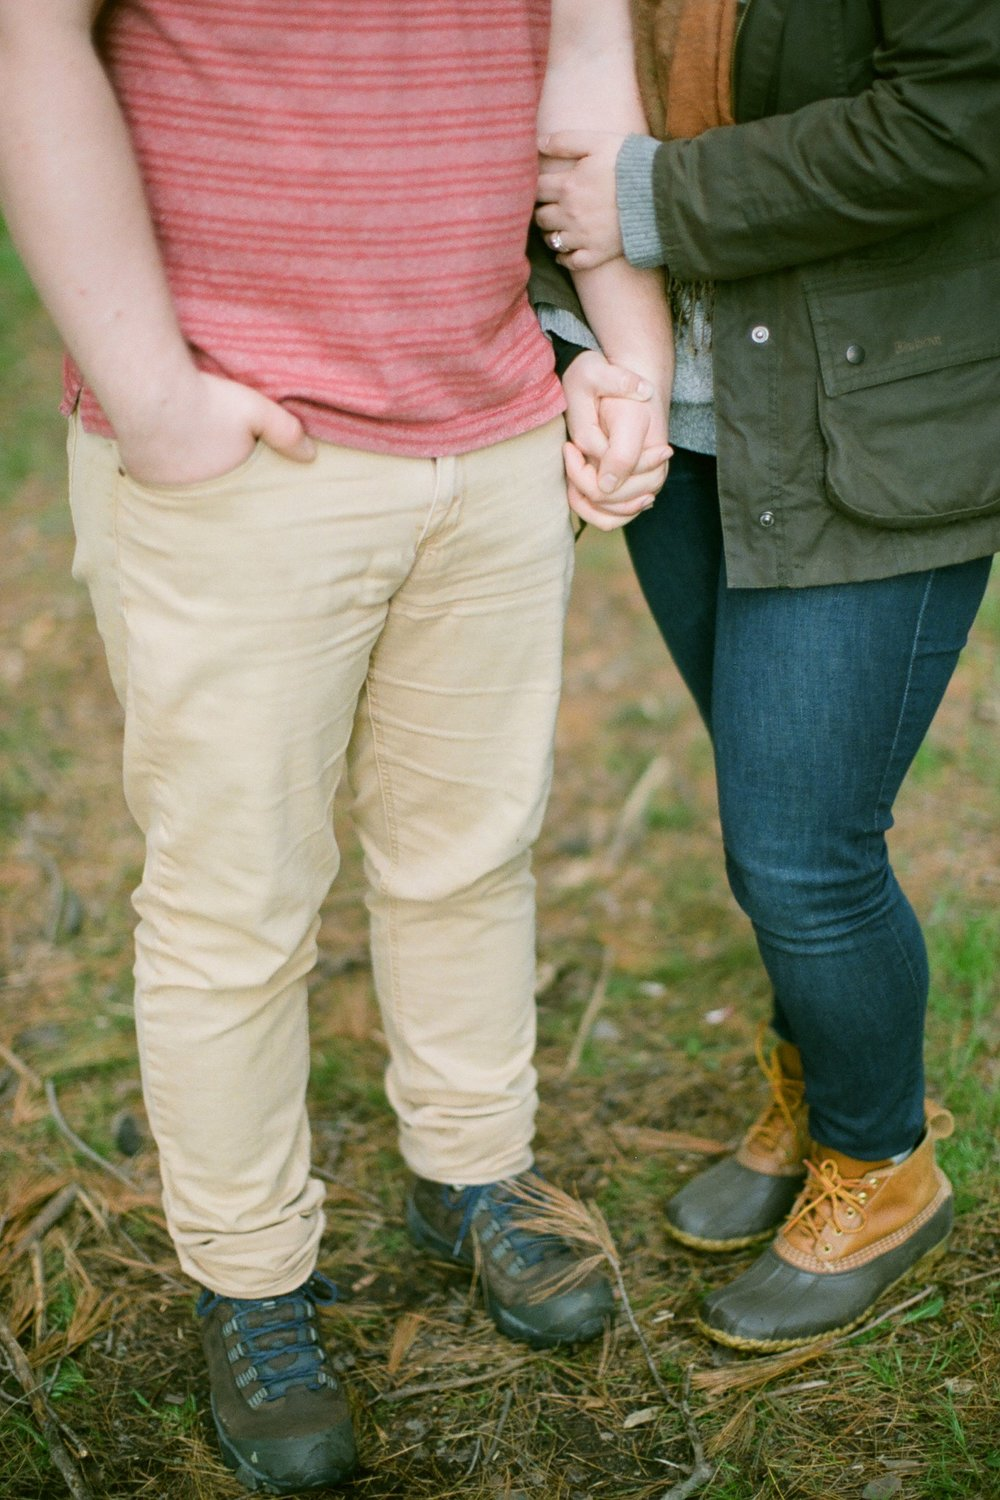 deborah_zoe_photography_engagement_session_0099.JPG